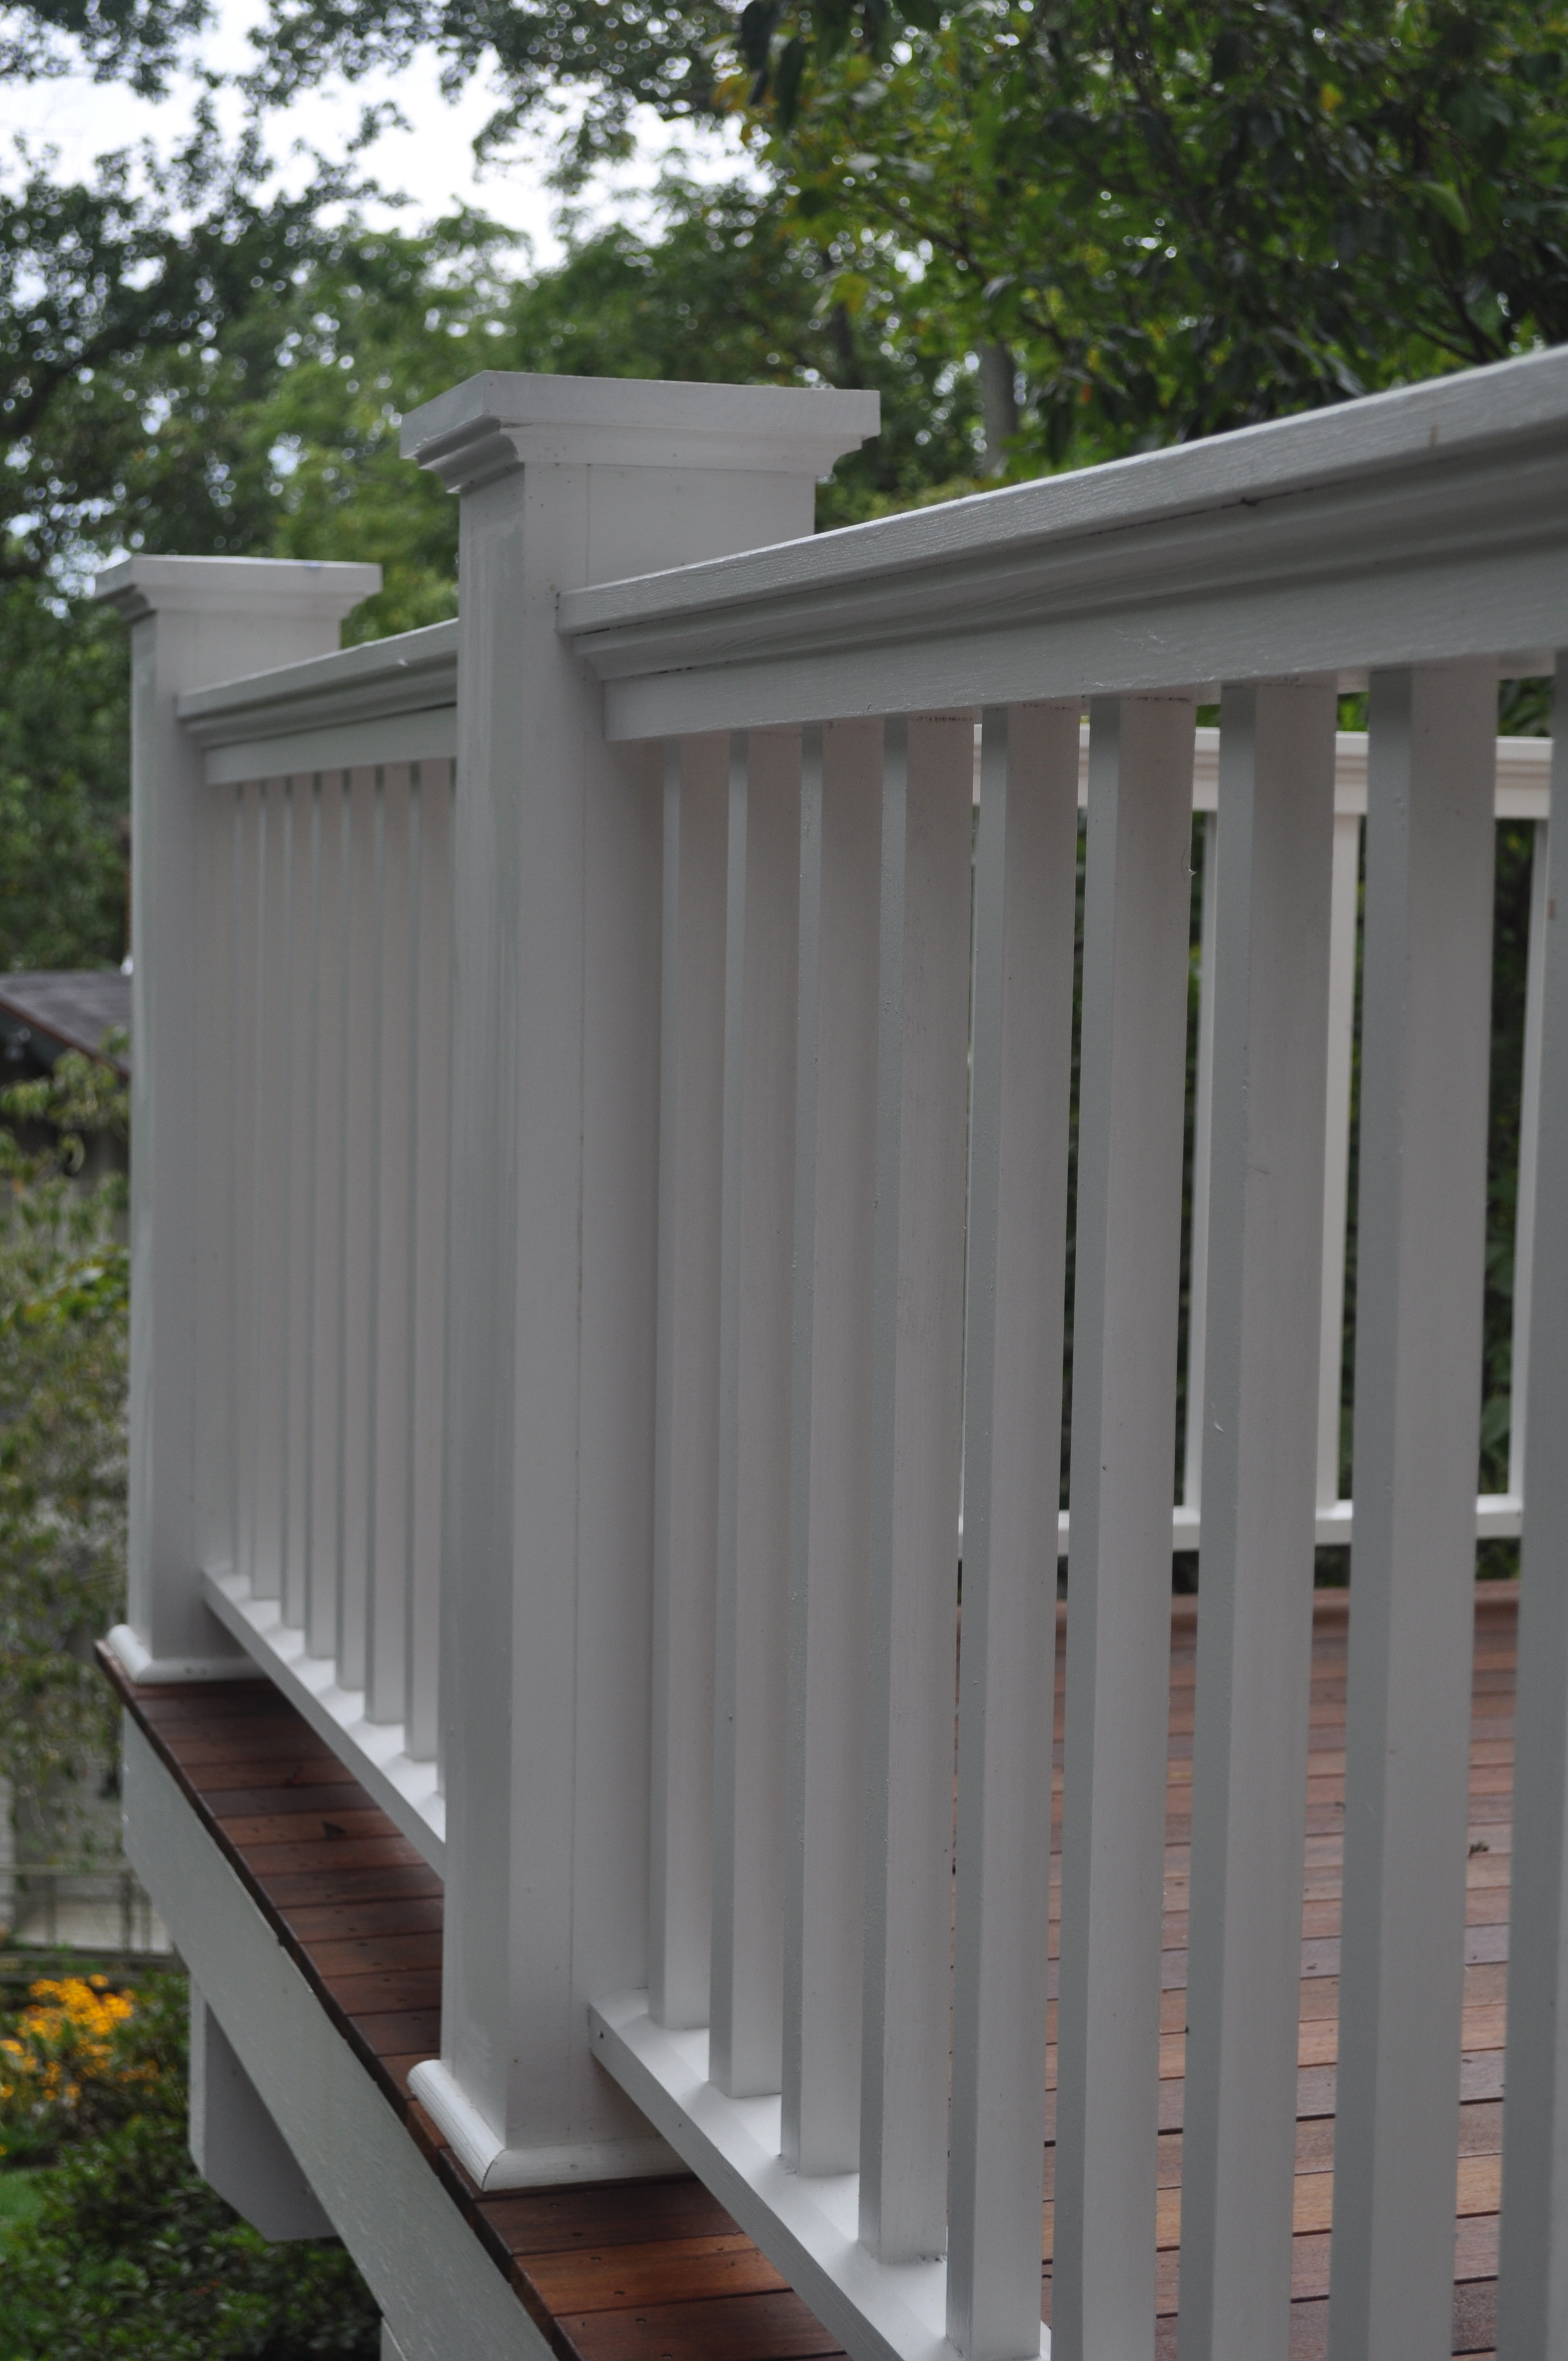 Historic 1920's Bungalow, Detail of handrail.